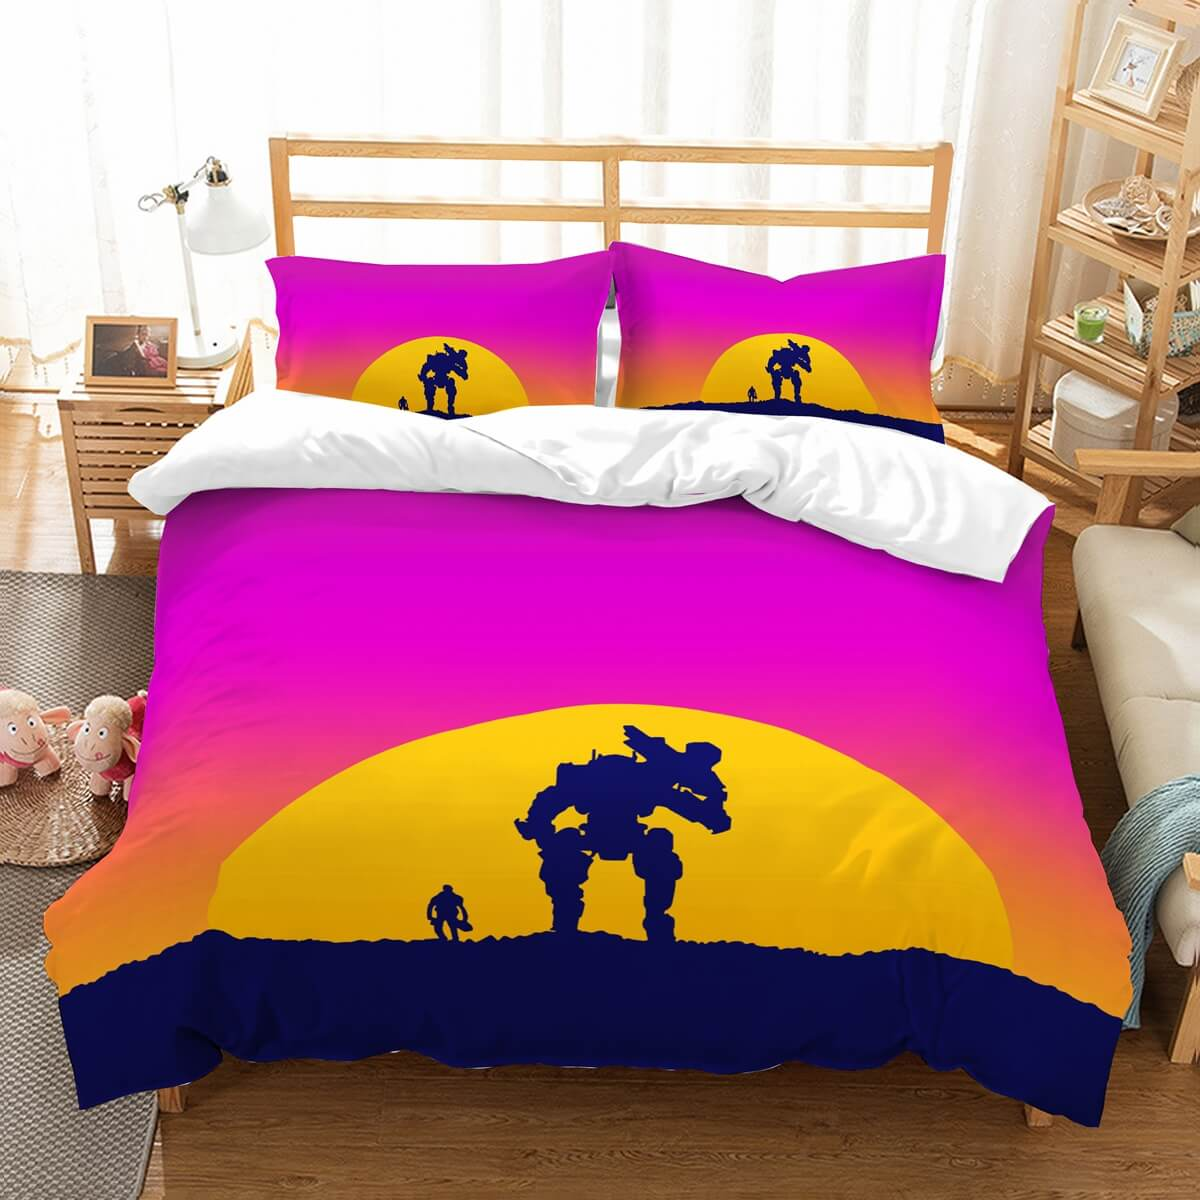 3D Customize Titanfall 2 Bedding Set Duvet Cover Set Bedroom Set Bedlinen